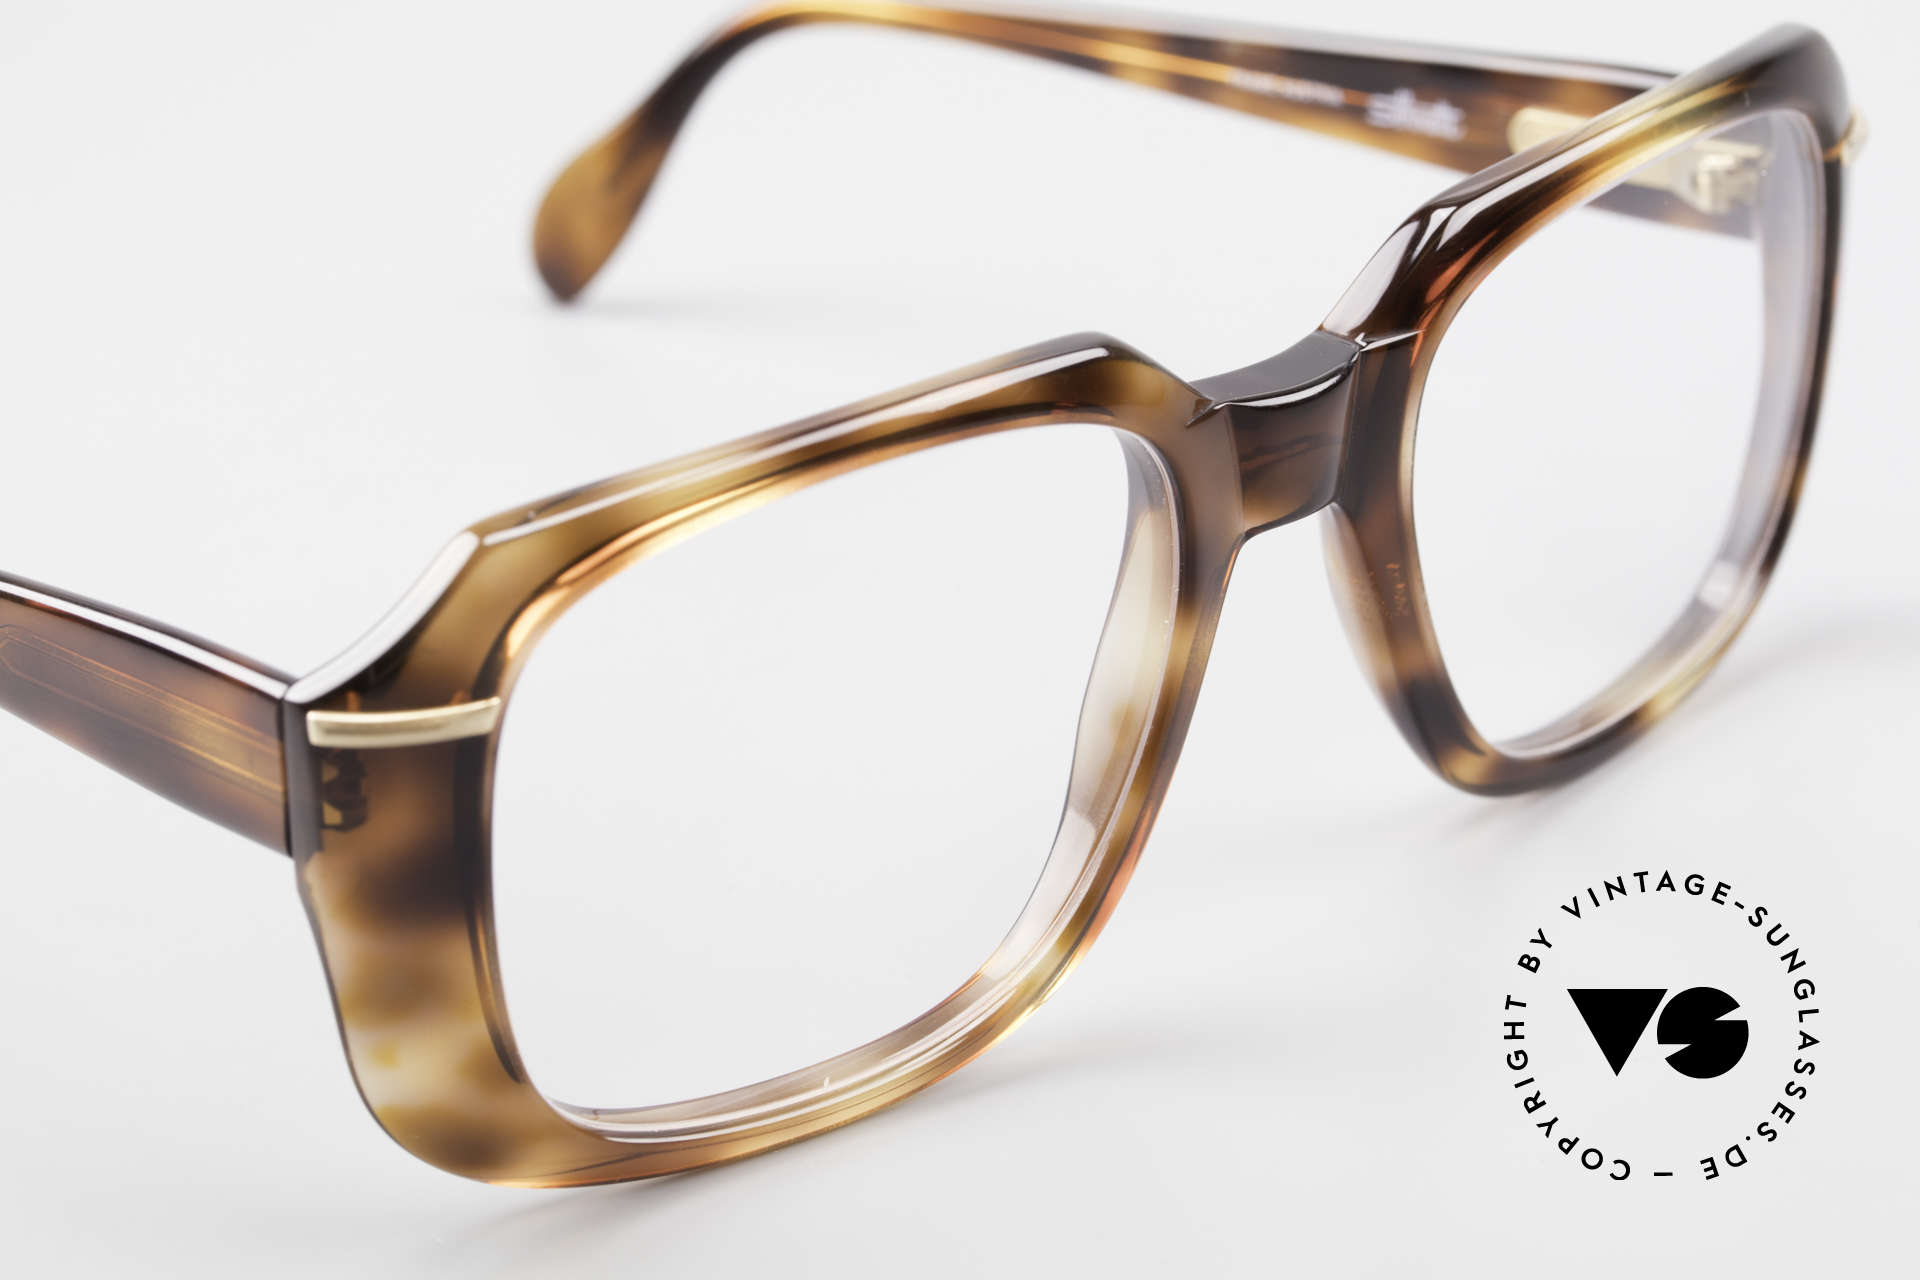 Silhouette M2062 80's Old School Eyeglasses, new old stock (like all our rare 1980's eyeglasses), Made for Men